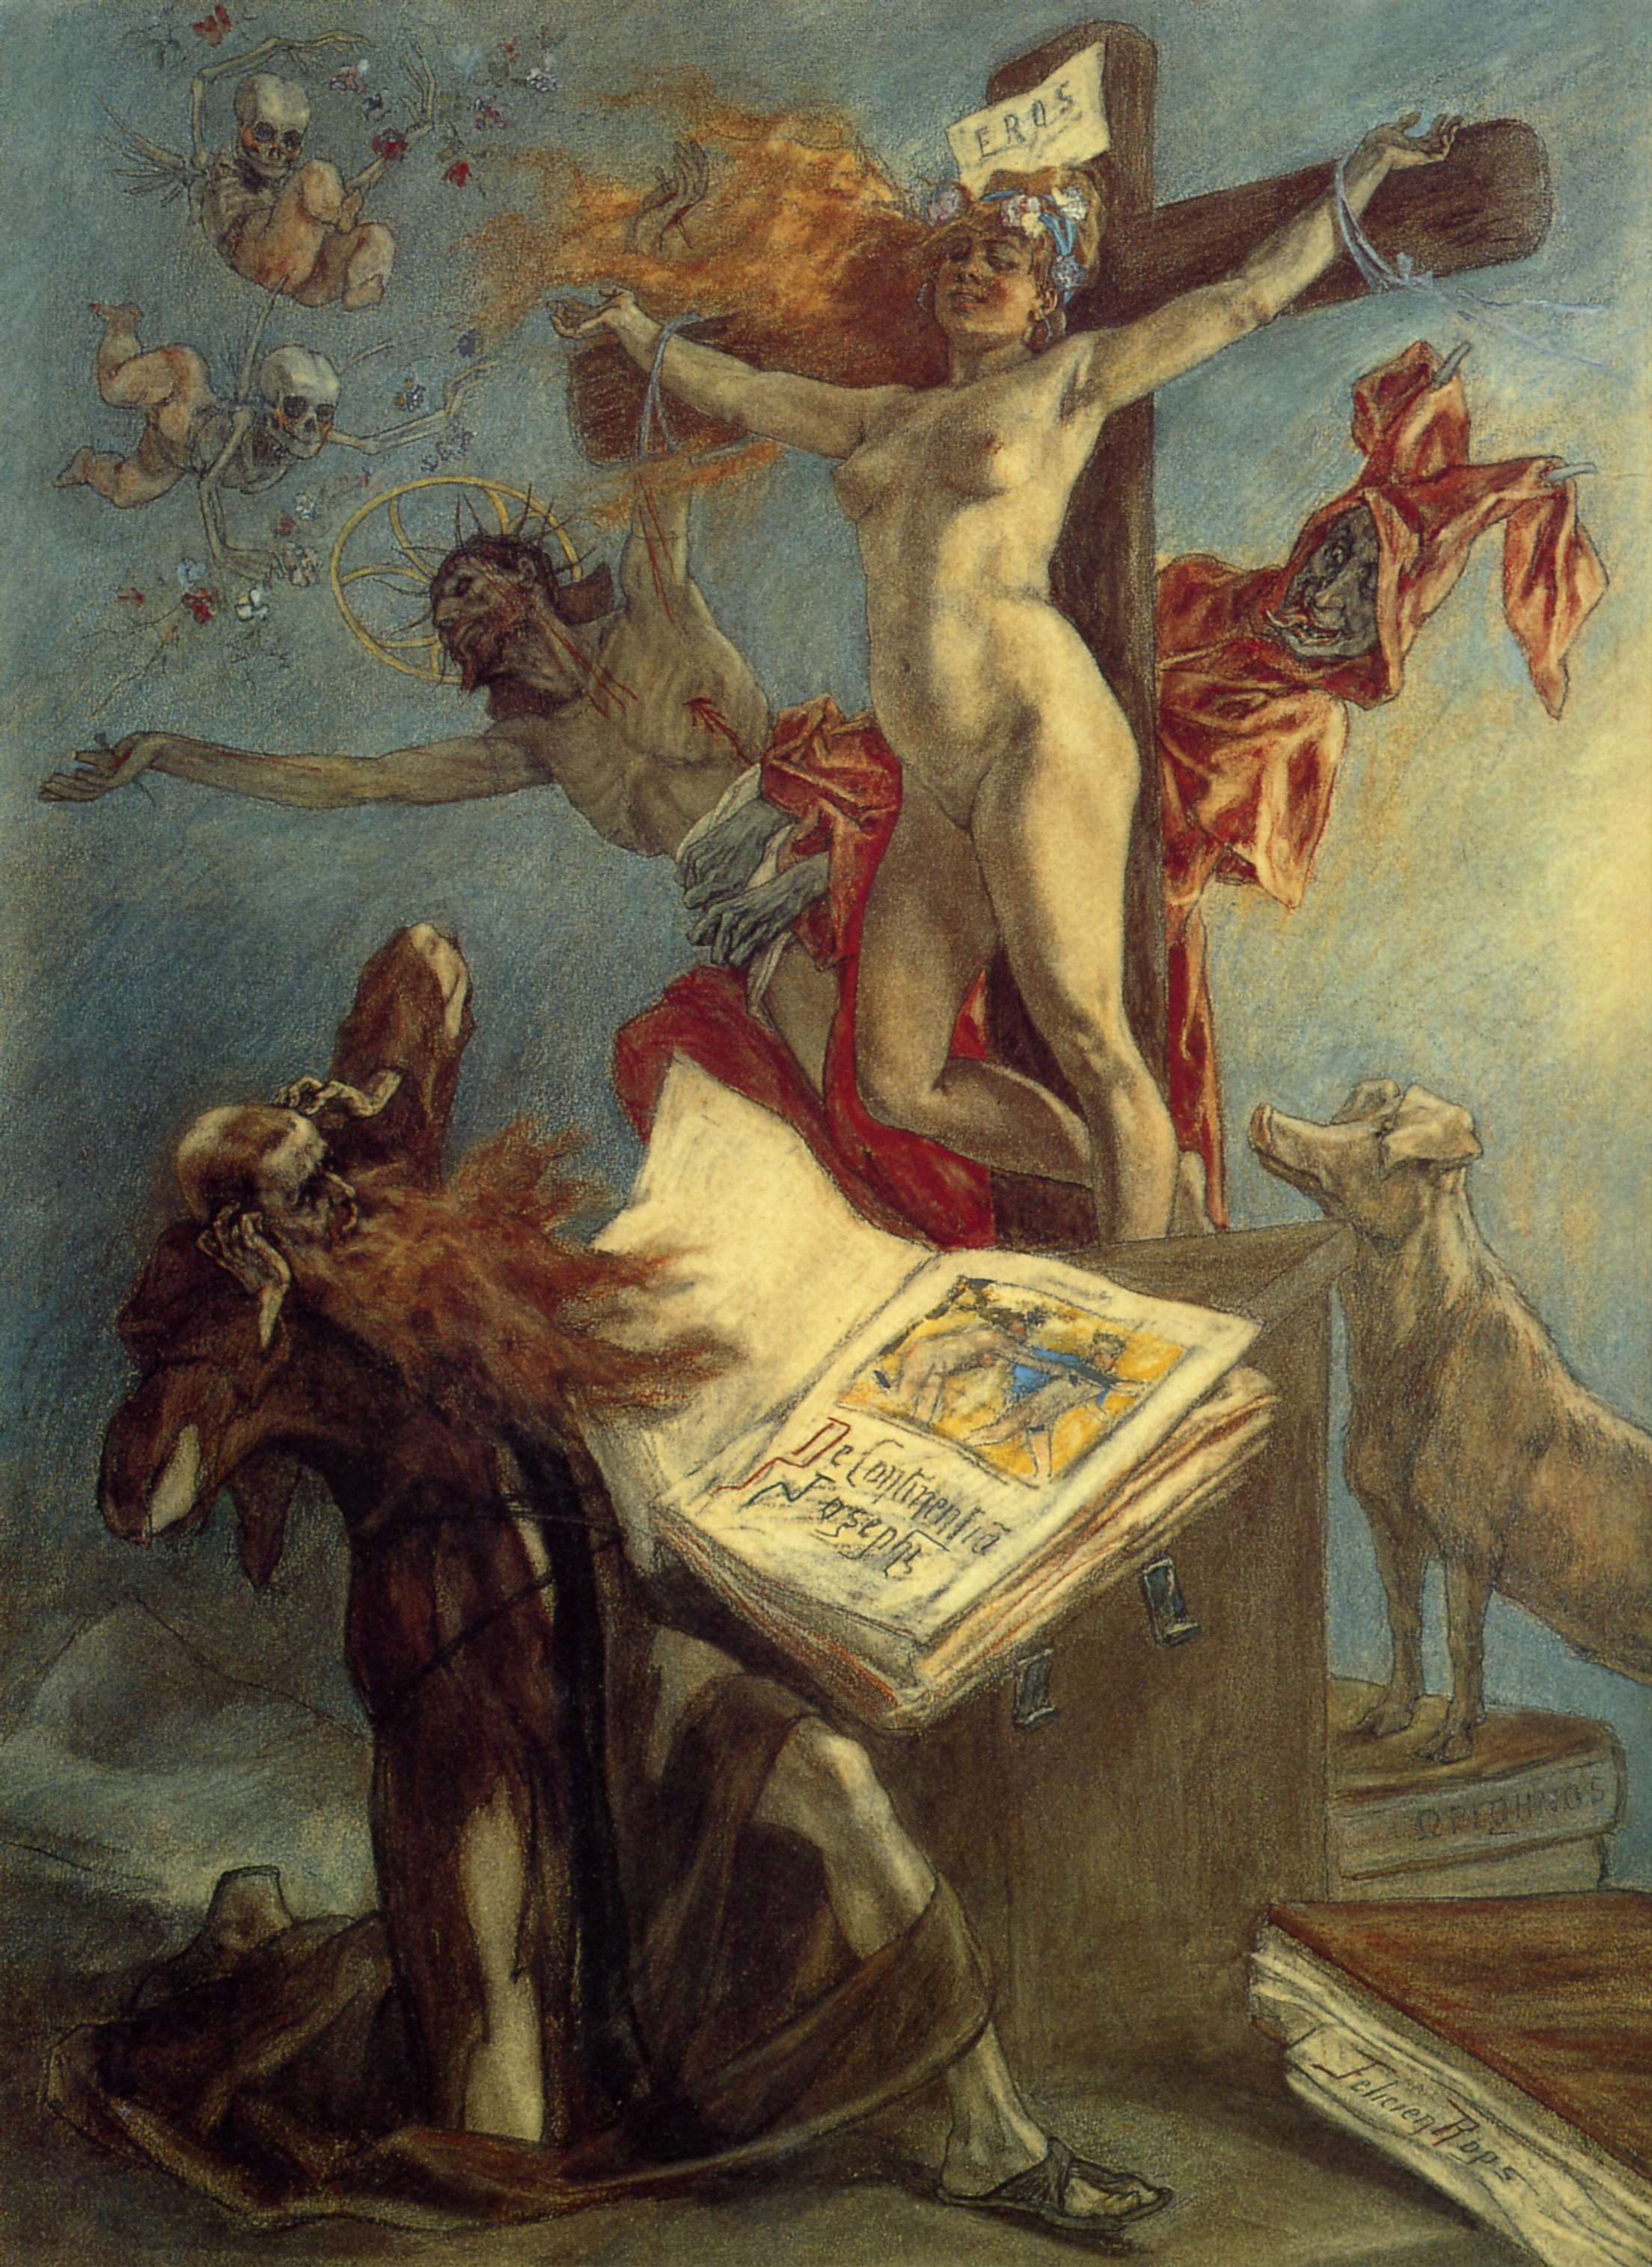 Félicien Rops (1833-1898),  The Temptation of Saint Anthony  (1878), pastel and gouache on paper, 73.8 × 54.3 cm. Cabinet des estampes, Bibliothèque Royale Albert Ier, Brussels. Wikimedia Commons.